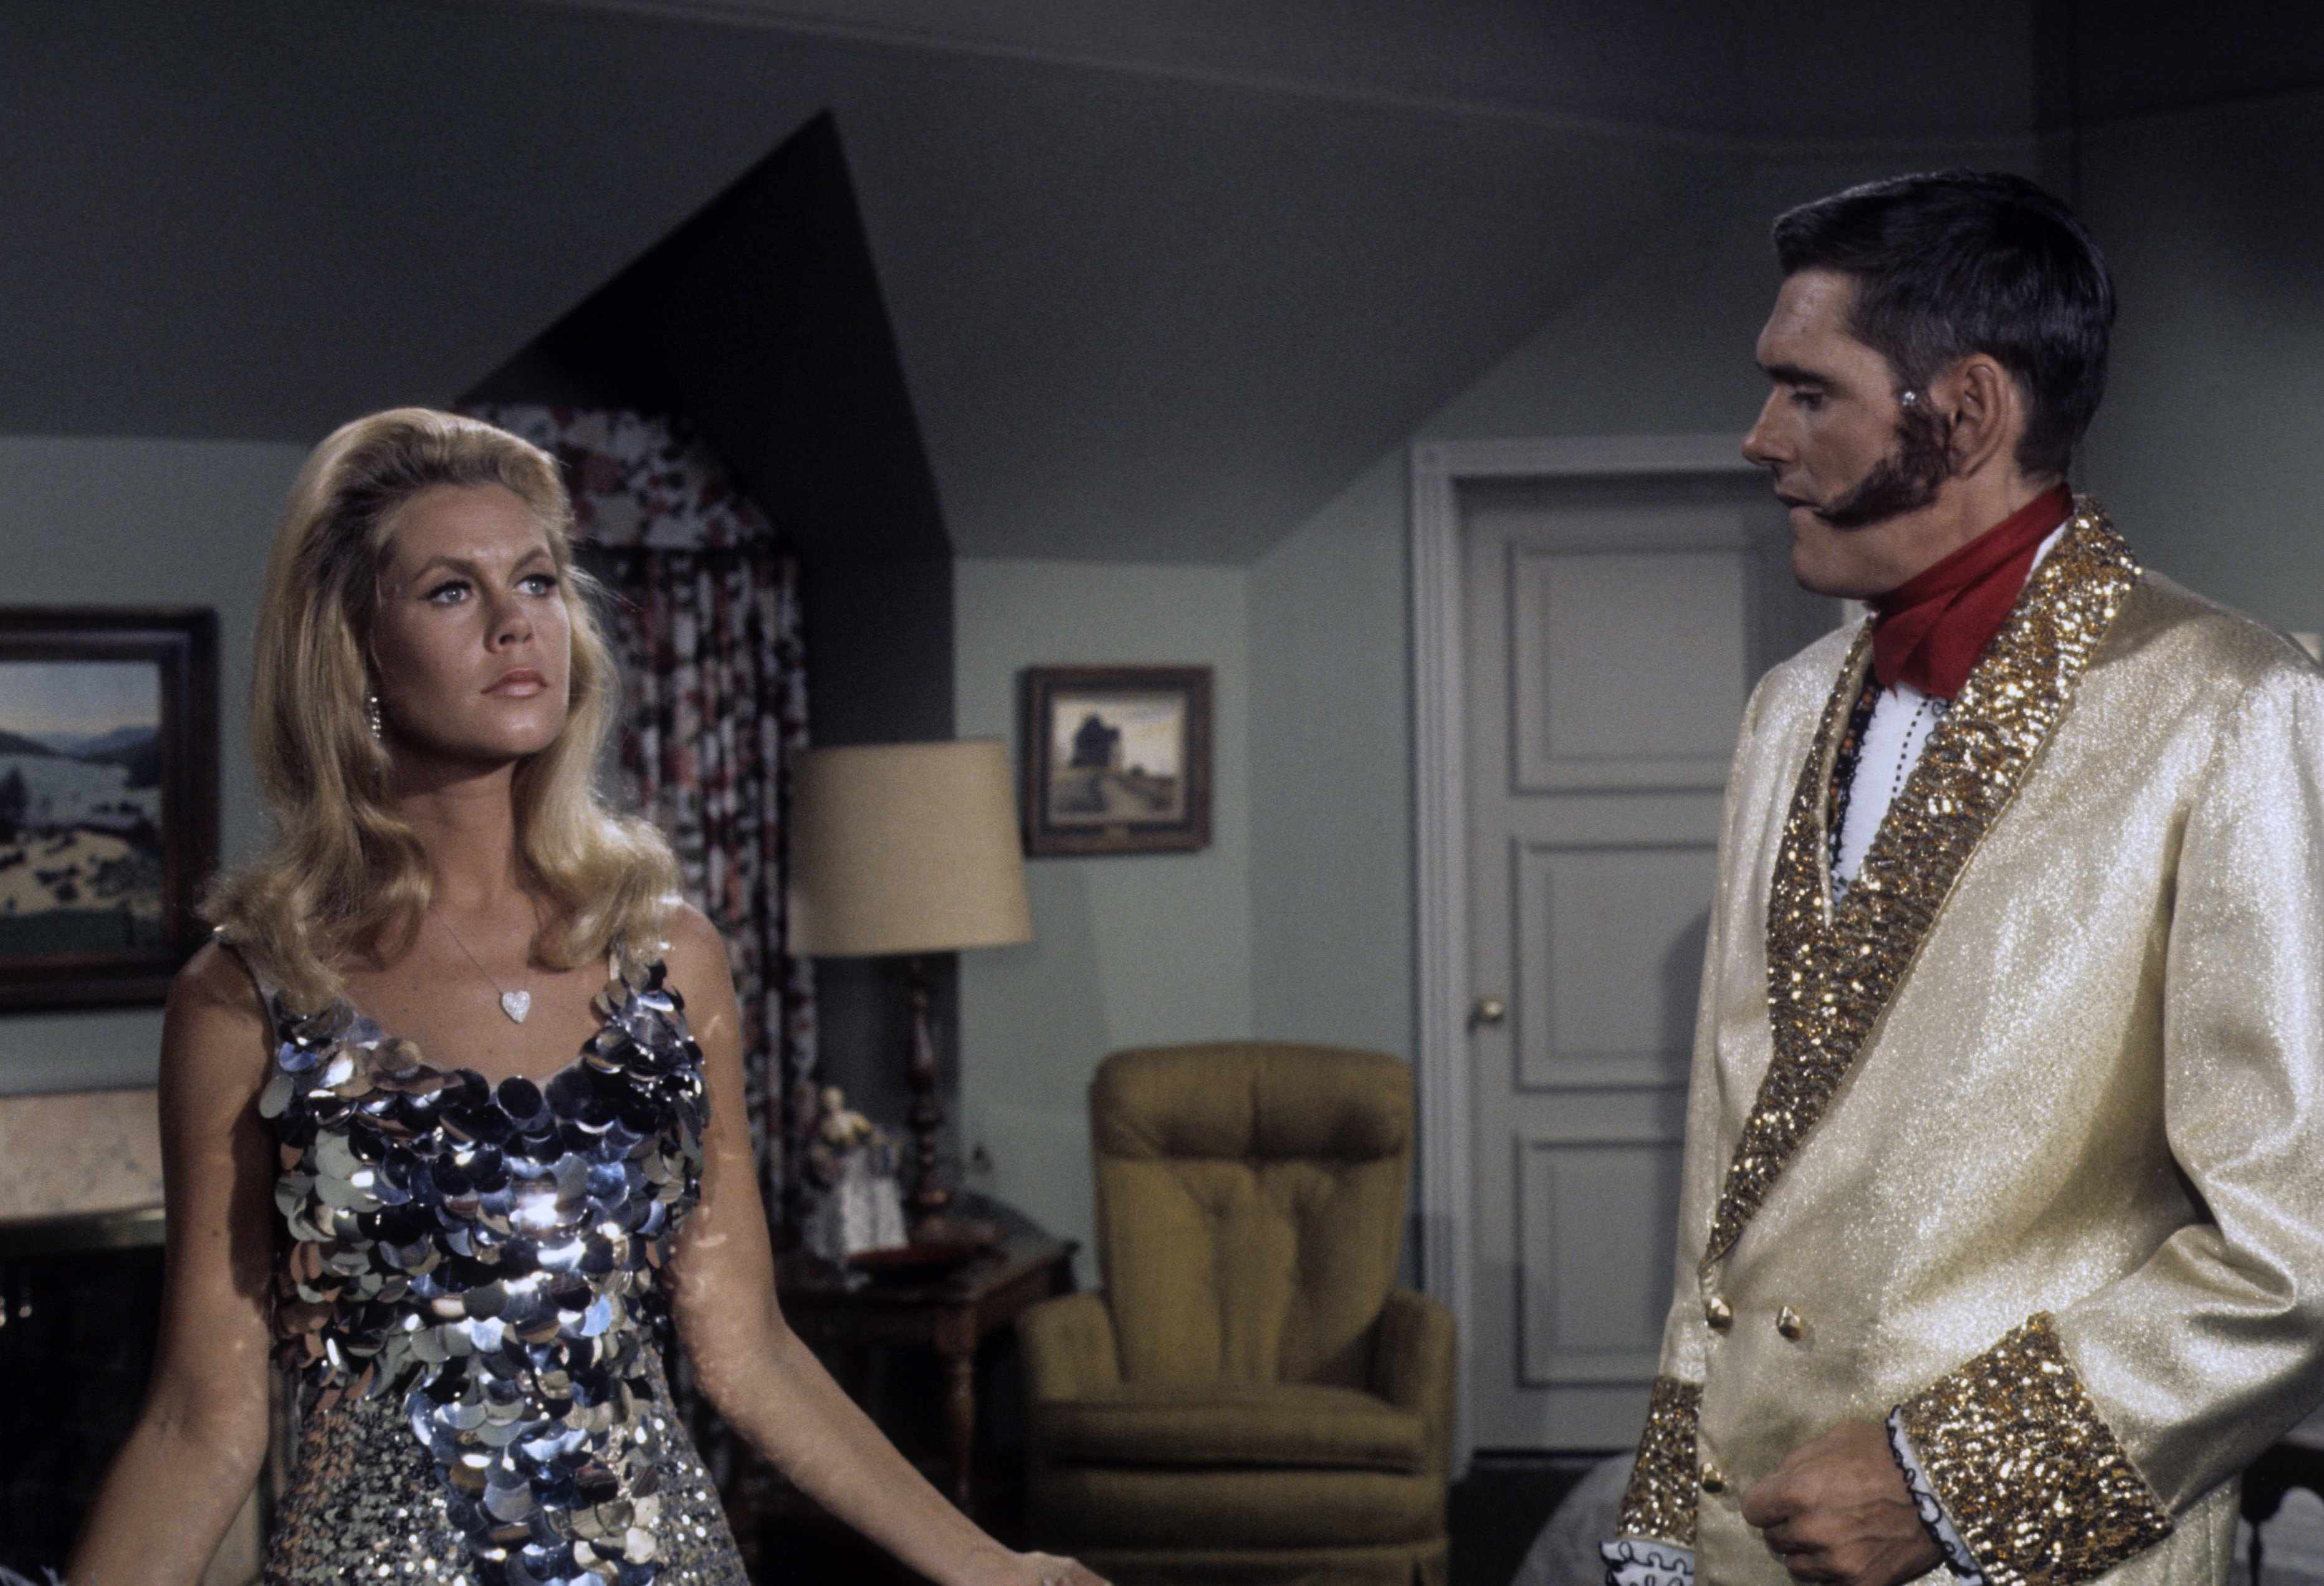 """BEWITCHED - """"Samantha and Darrin in Mexico City"""" - Airdate: April 24, 1969. (Photo by ABC Photo Archives/ABC via Getty Images)ELIZABETH MONTGOMERY;DICK YORK"""